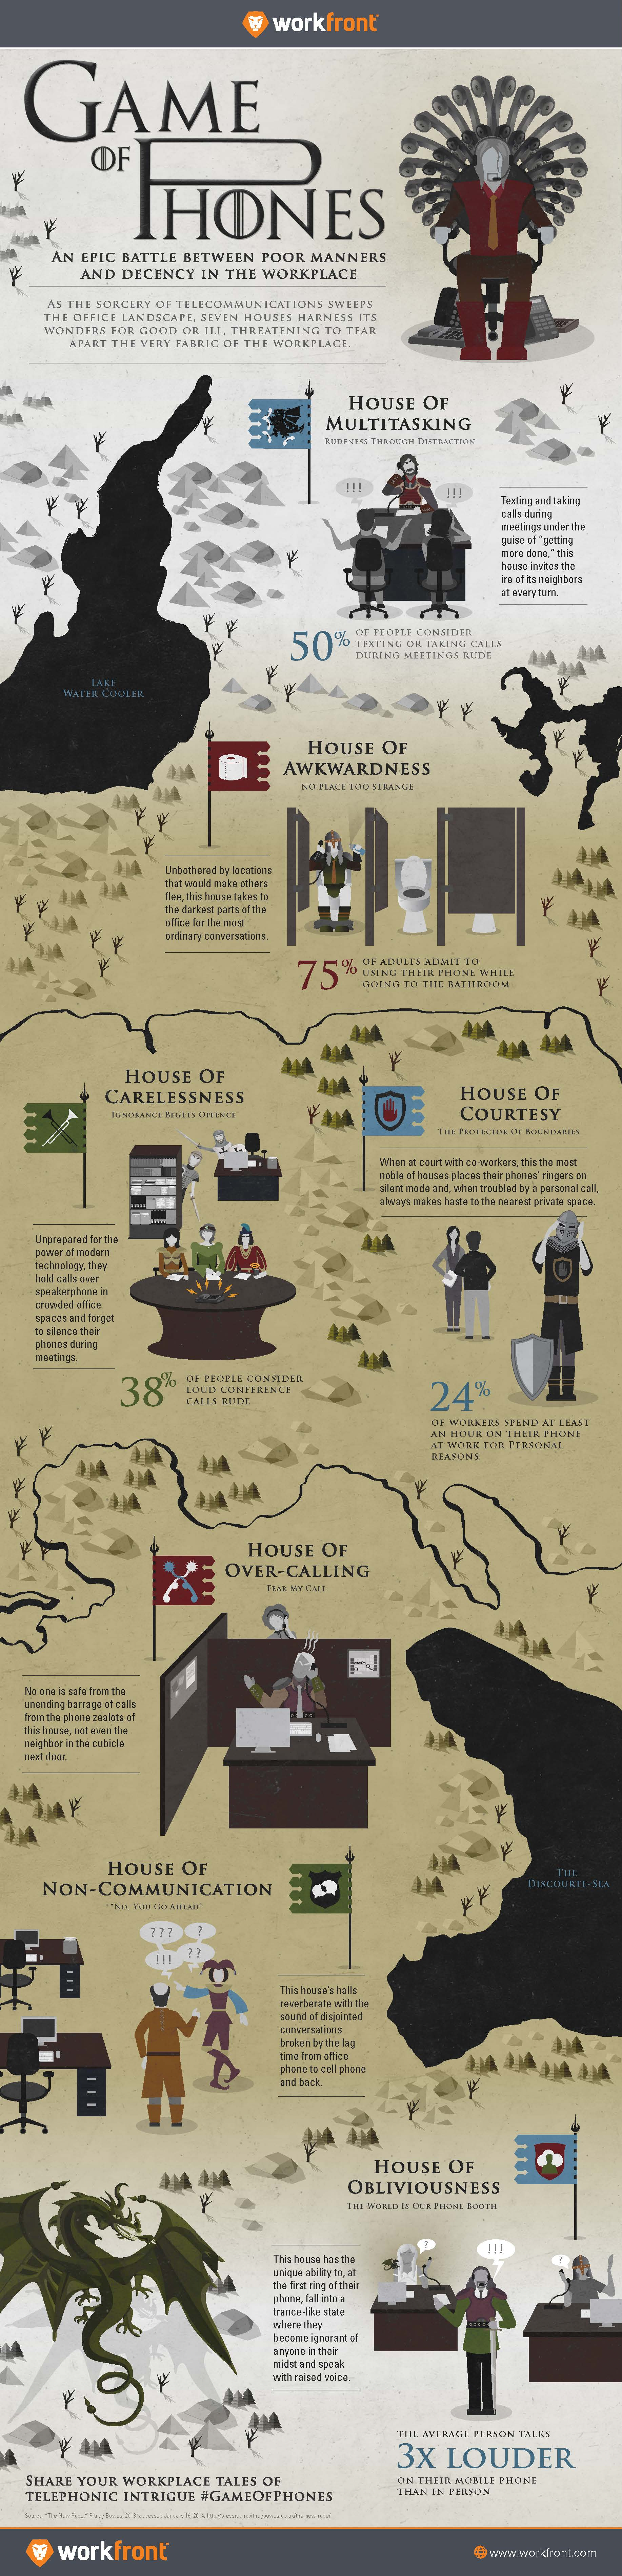 game-of-phones-infographic